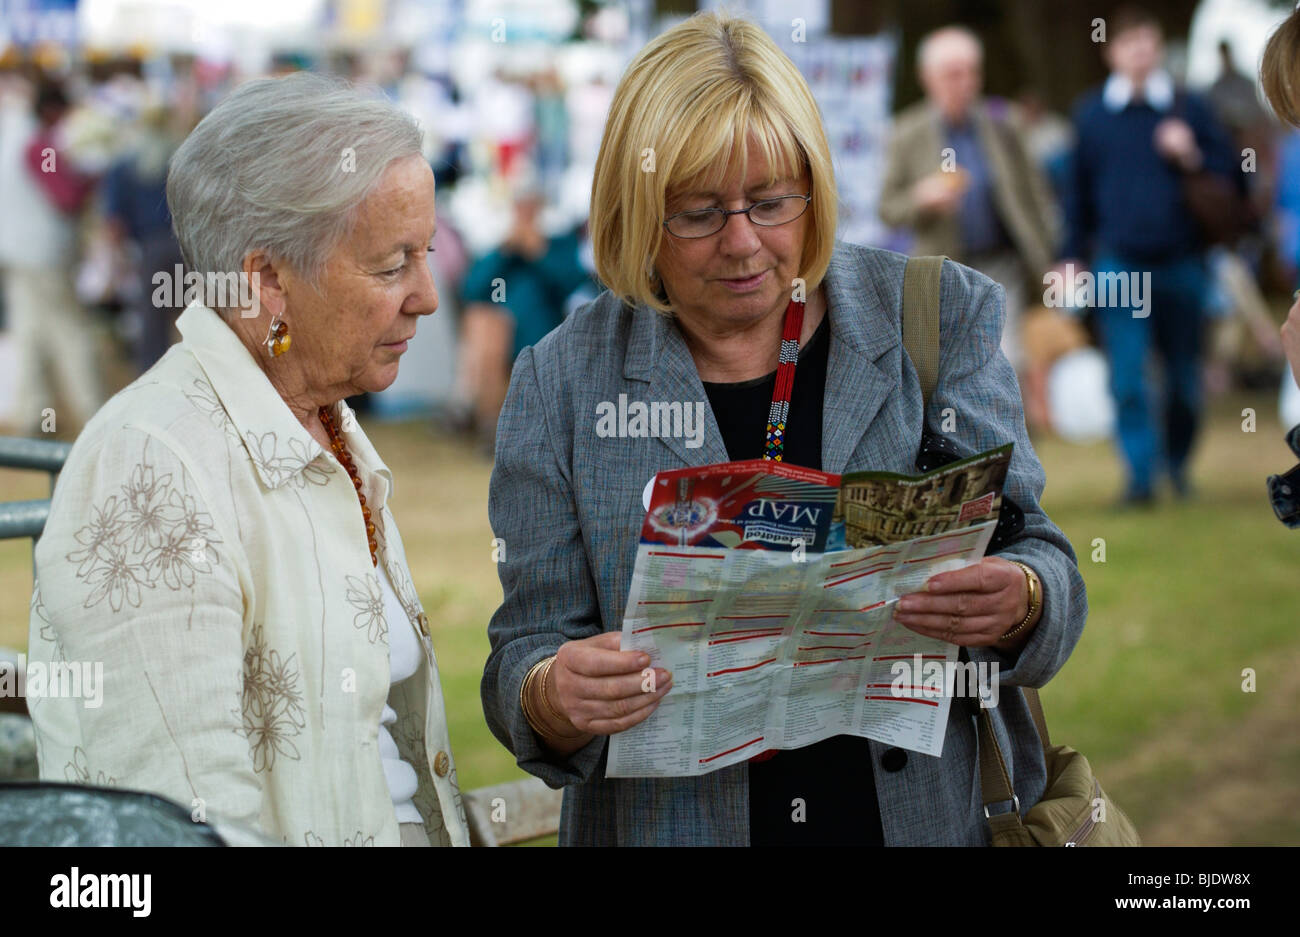 Eisteddfod visitor Ann Clwyd MP studying map of festival site, National Eisteddfod of Wales Newport Gwent South - Stock Image